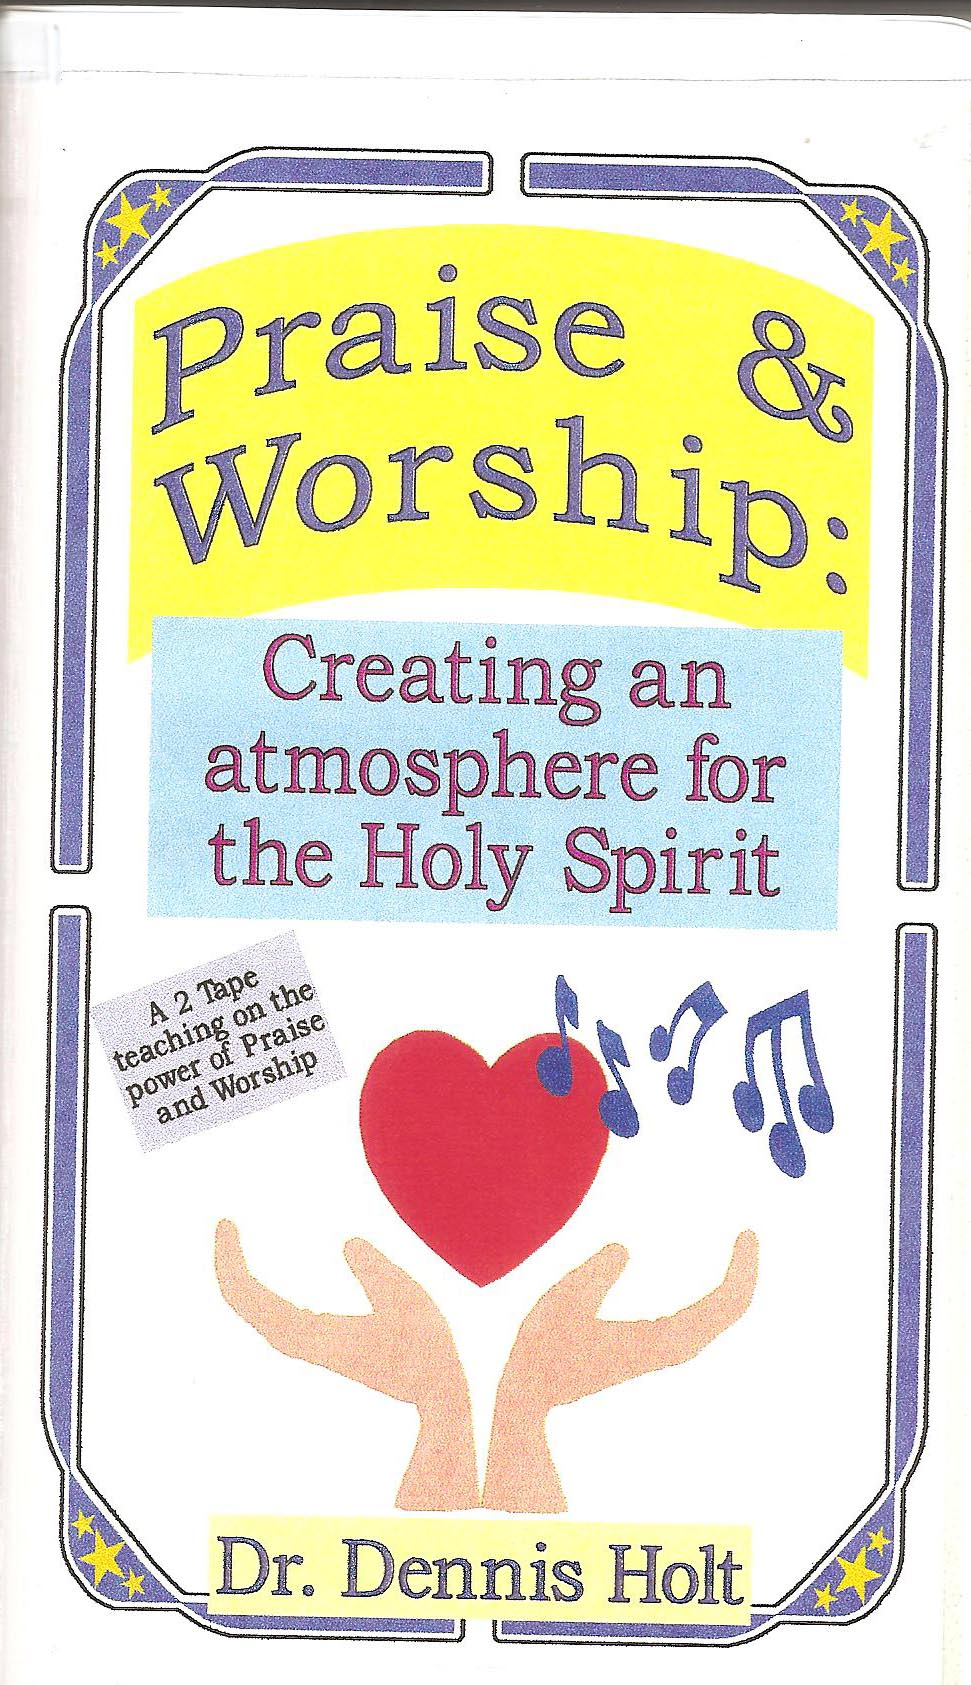 Songs for Praise and Worship   VOl 1  CD1 & CD2